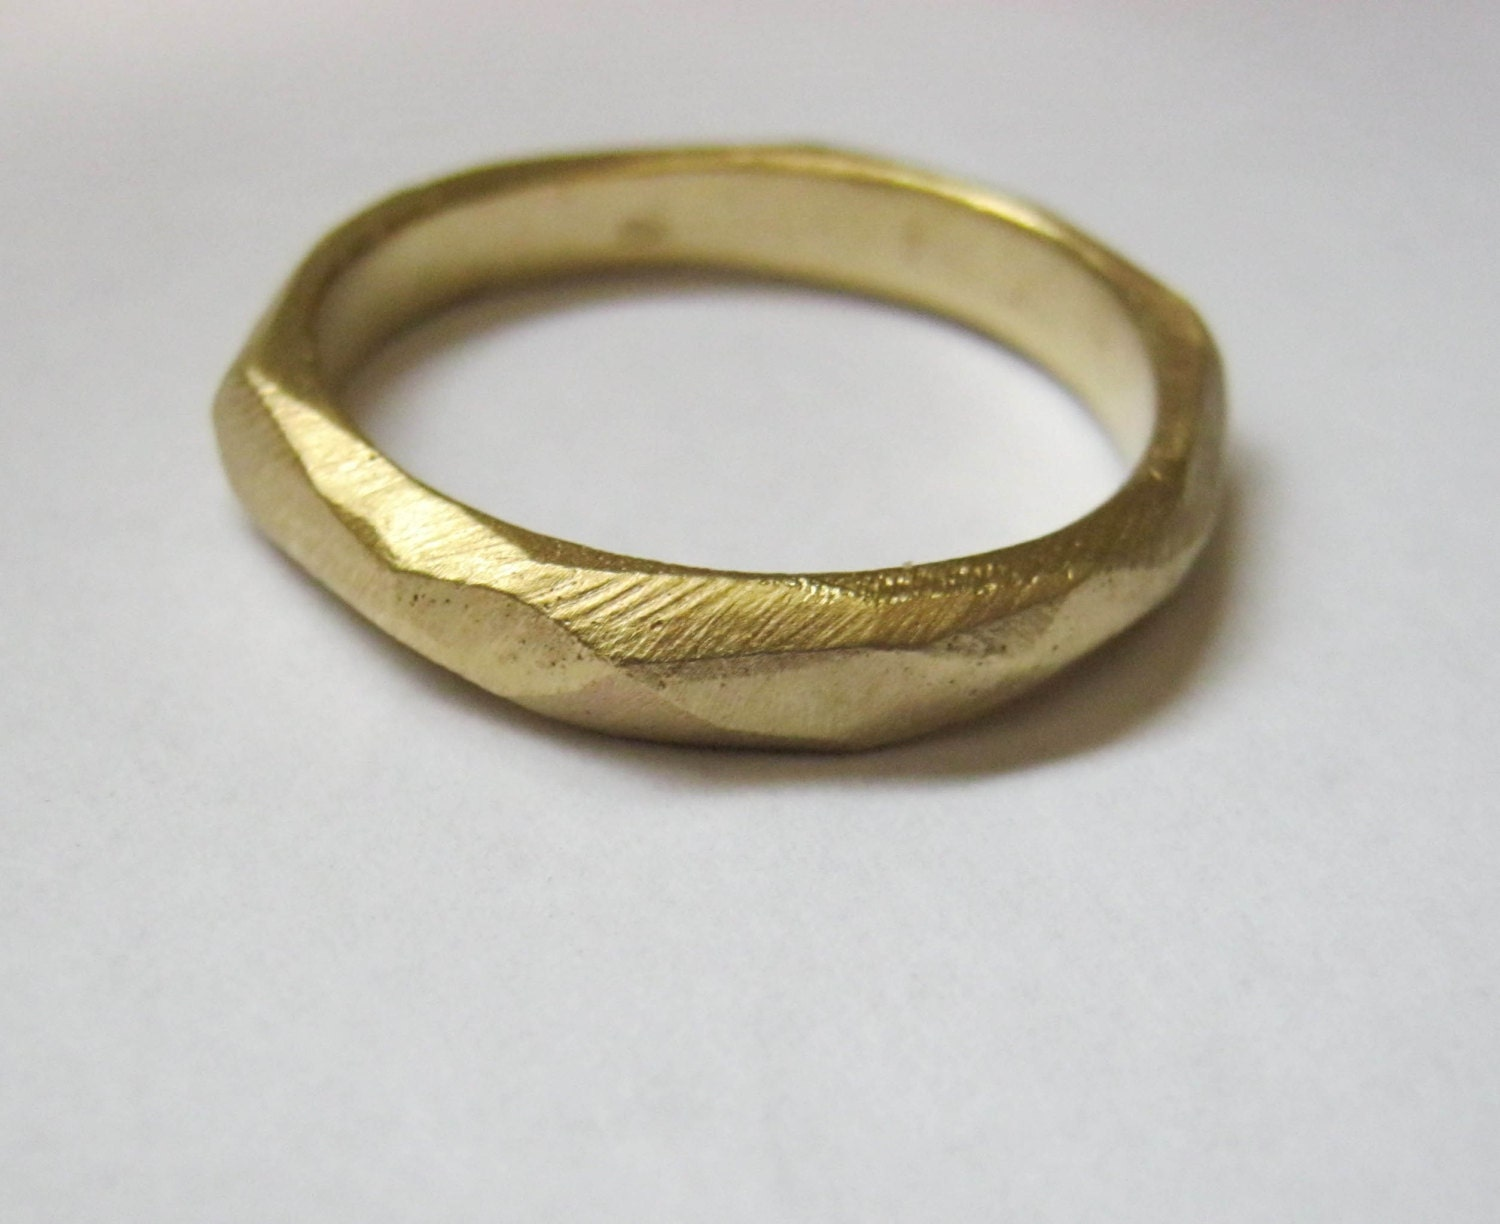 gold products ring carbon sleeve custom fiber made band with bands side cut